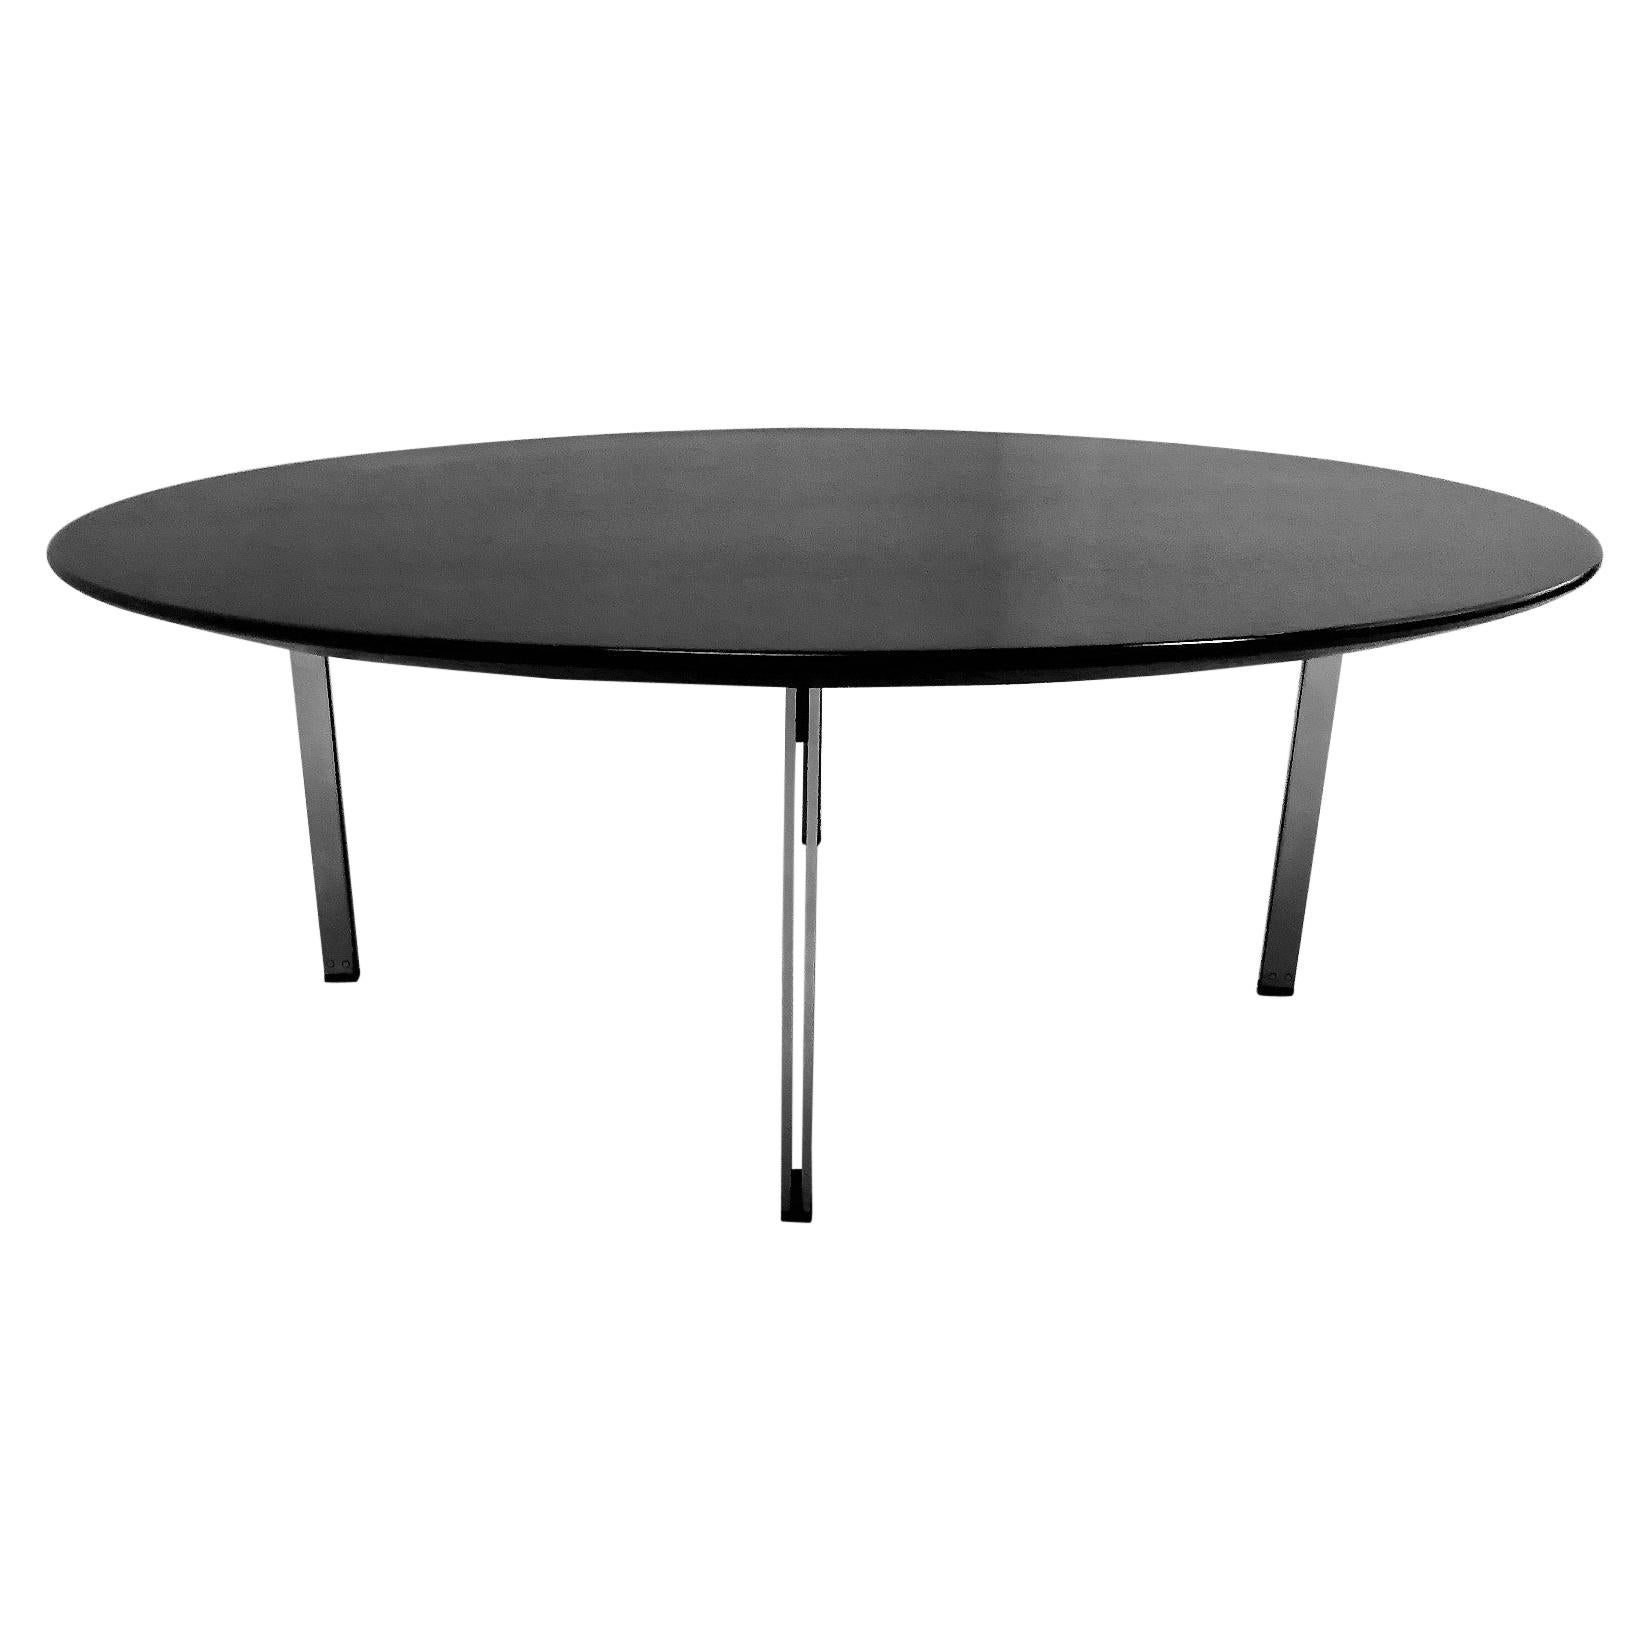 1960s Florence Knoll Parallel Bar Ebonized Coffee Table for Knoll